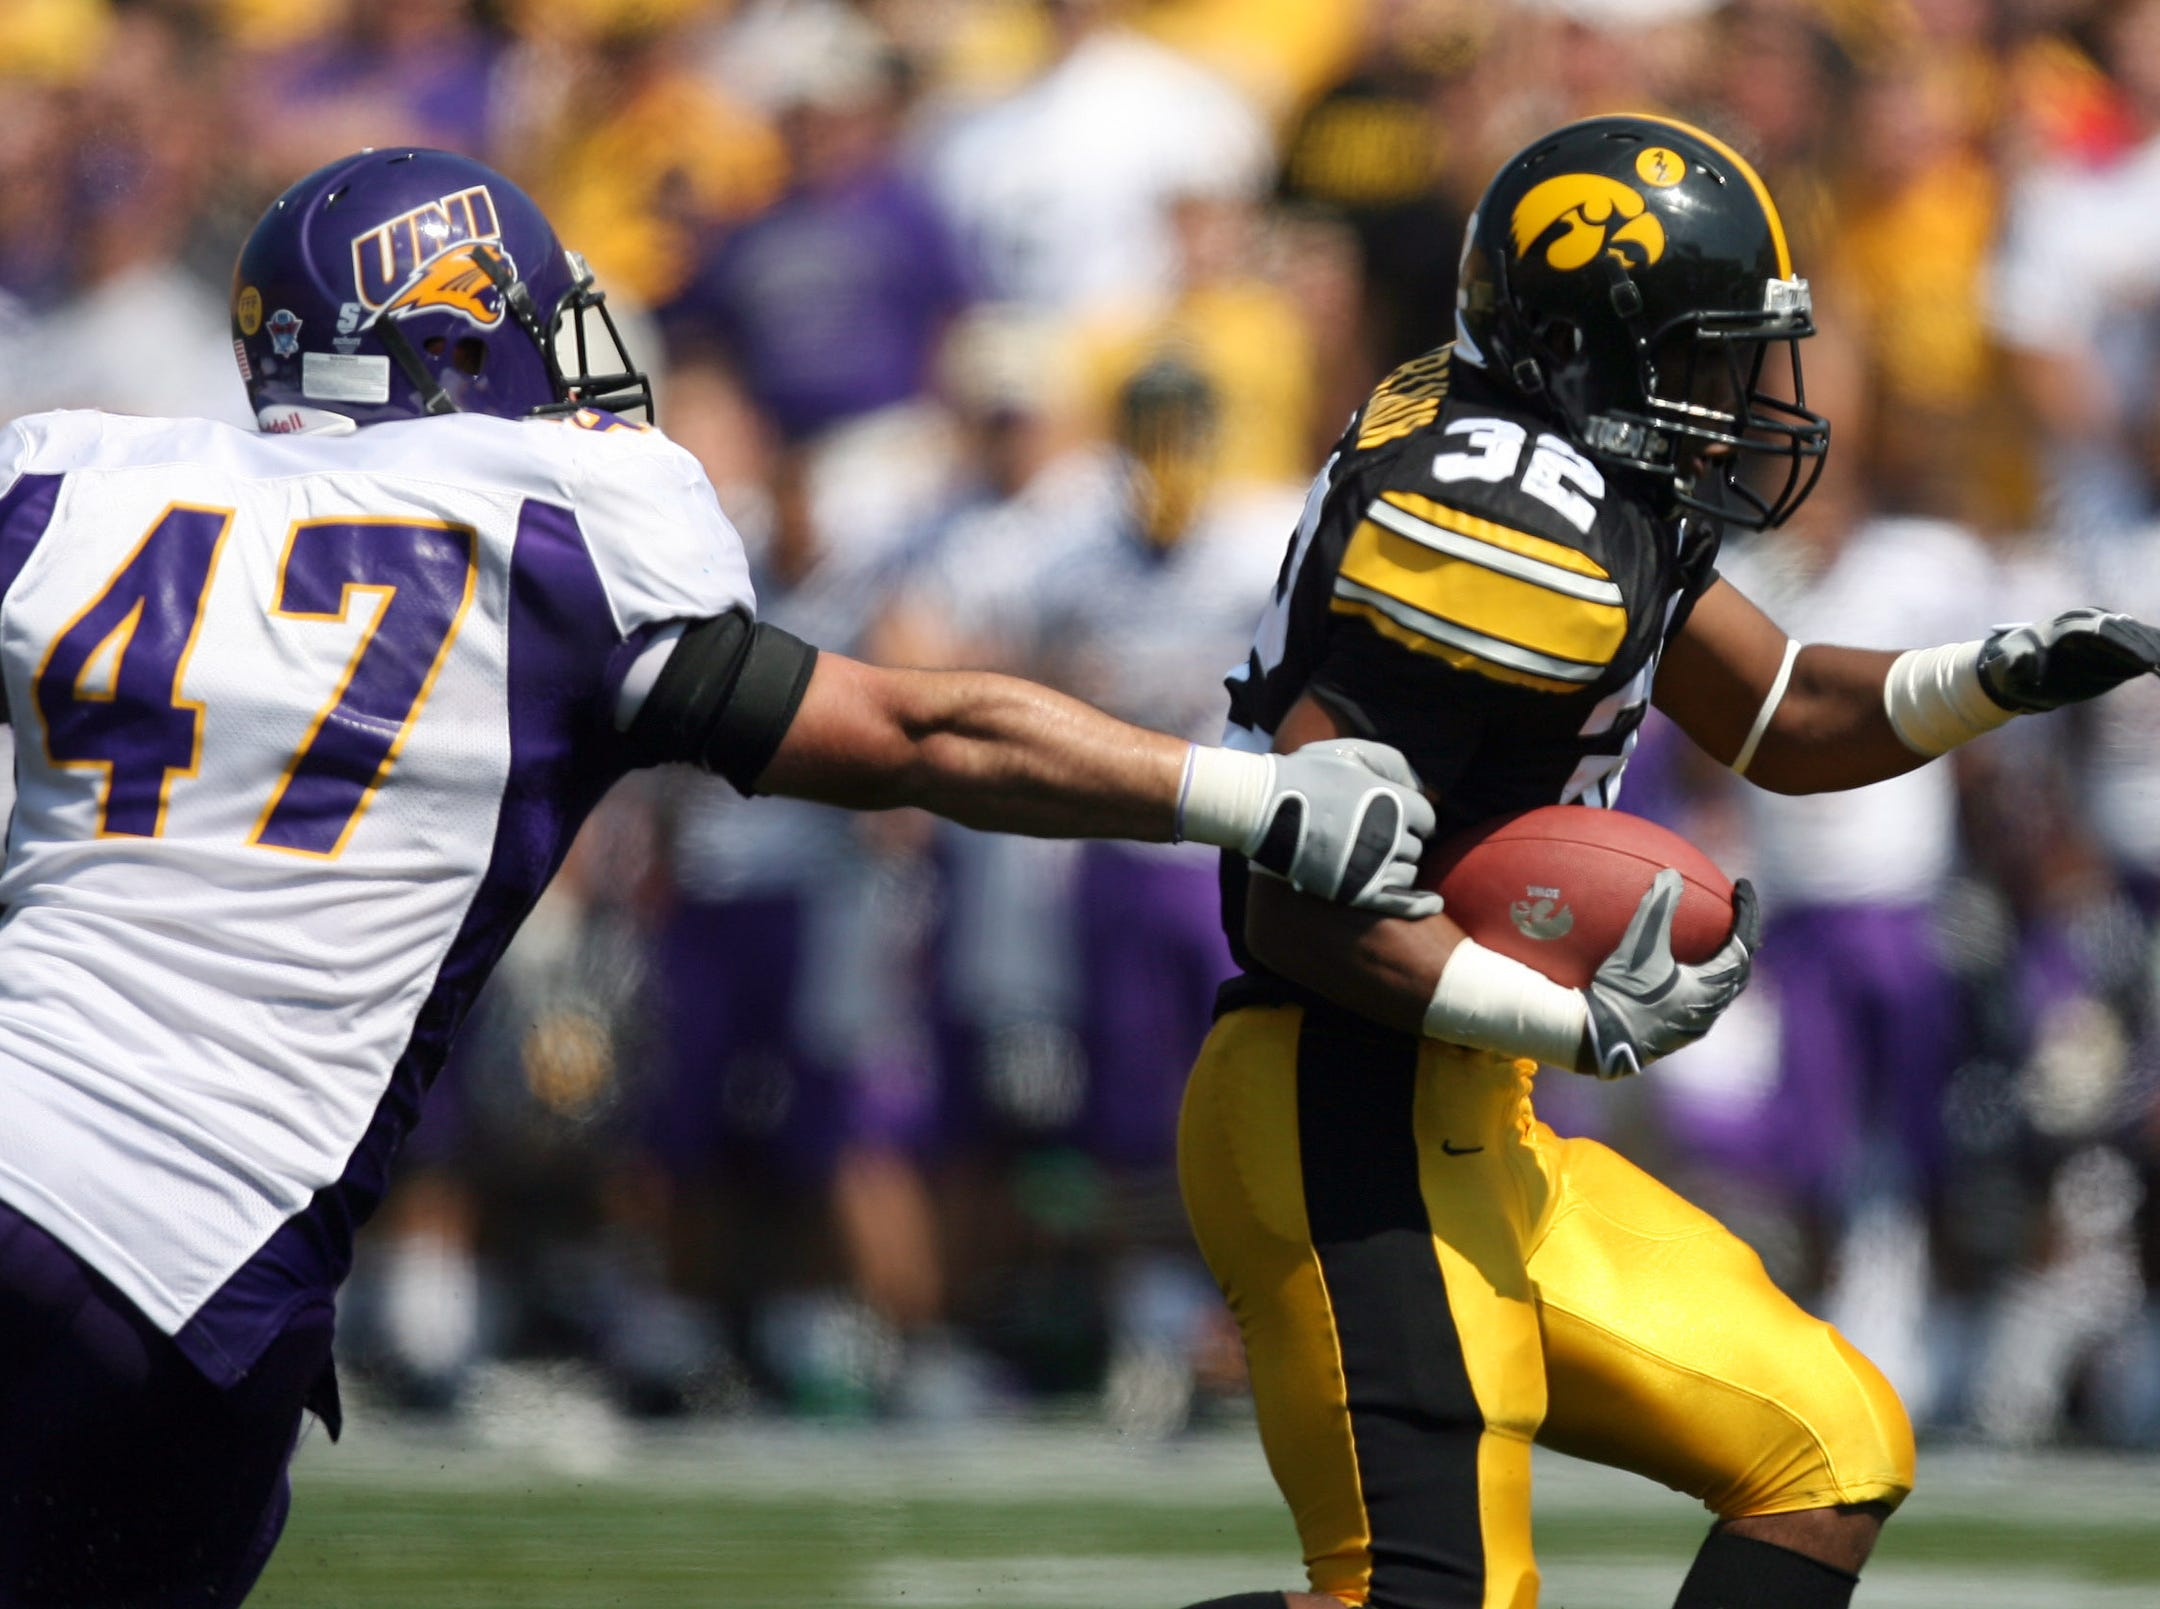 s0906iowafb - shot 09/05/09 Iowa City, IA.  Christopher Gannon/The Register  -- Iowa vs. Northern Iowa --   Iowa running back Adam Robinson (32) gets past past Northern Iowa linebacker Josh Mahoney (47) Saturday in Iowa City.  (Christopher Gannon/The Des Moines Register)